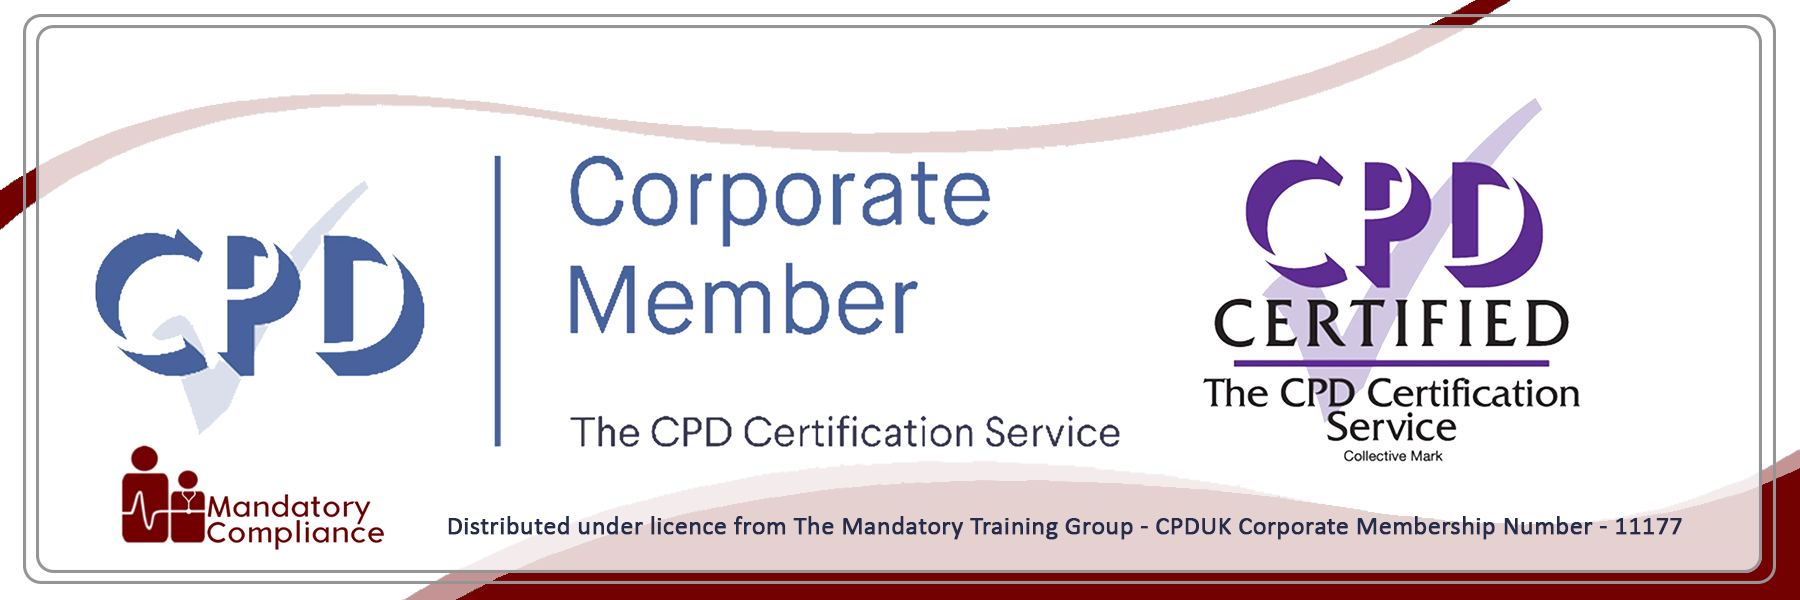 The Cloud and Business Training - Online Training Course - CPD Accredited - Mandatory Compliance UK -